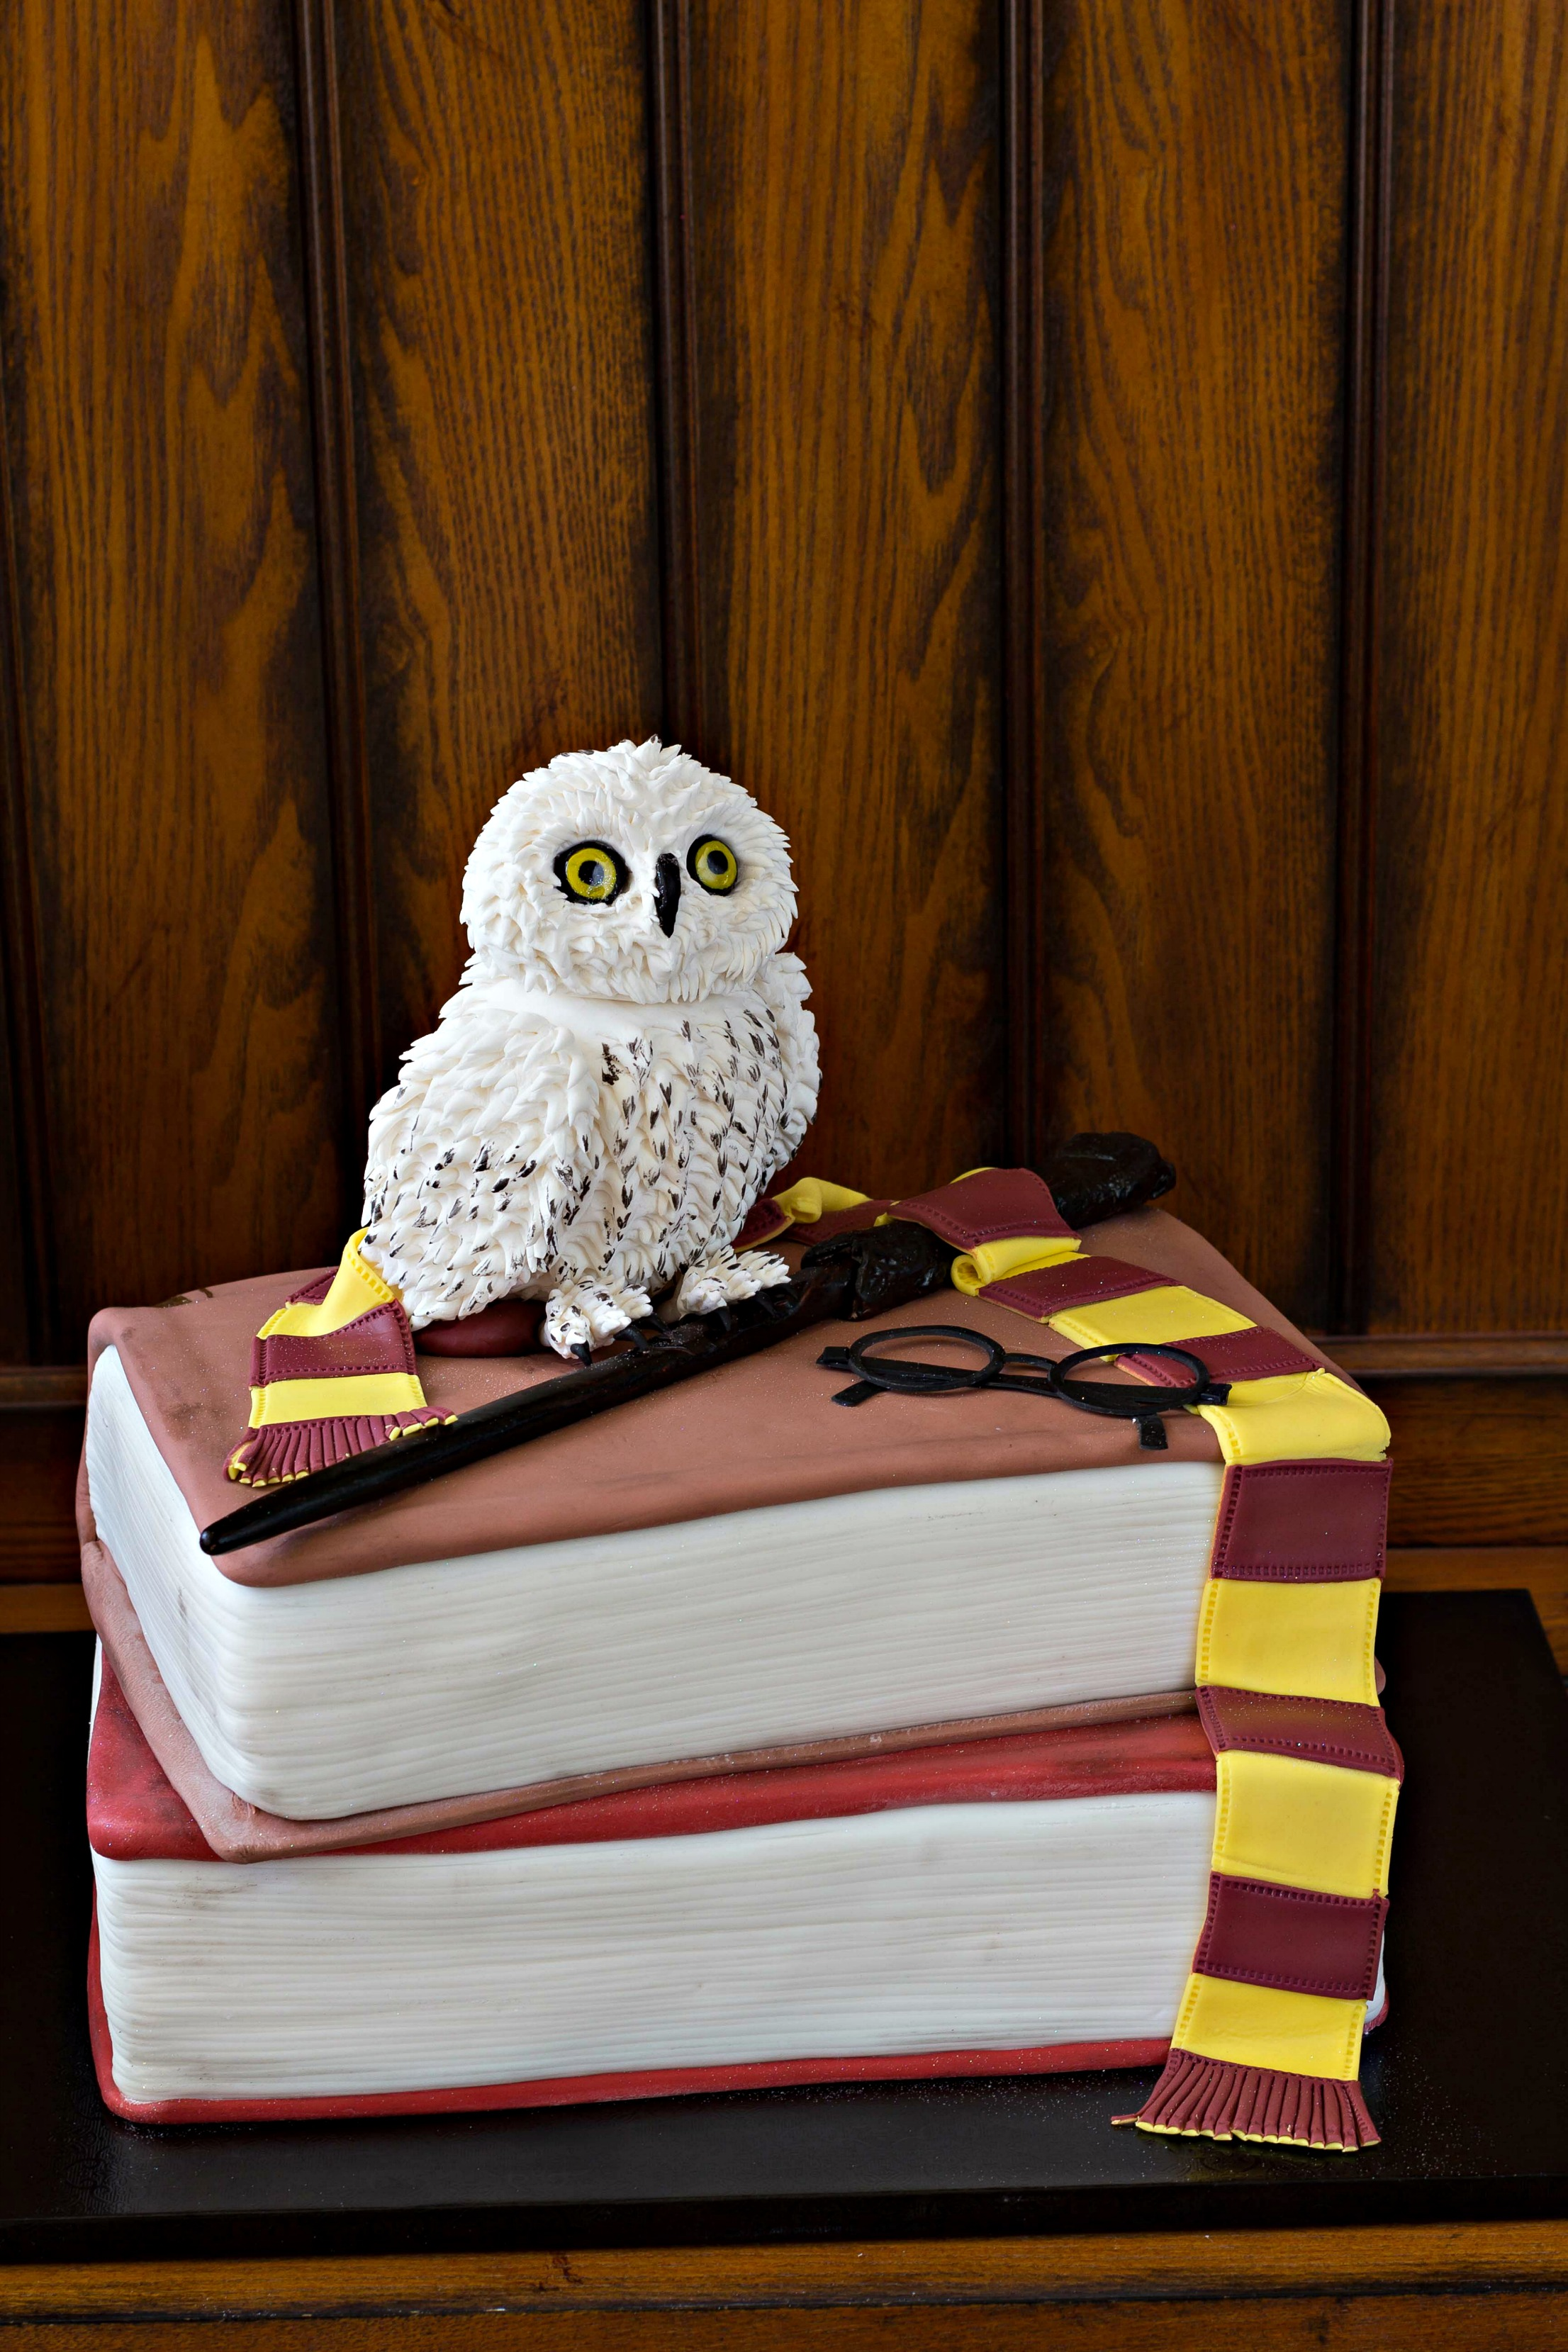 harry potter cake 2.jpg